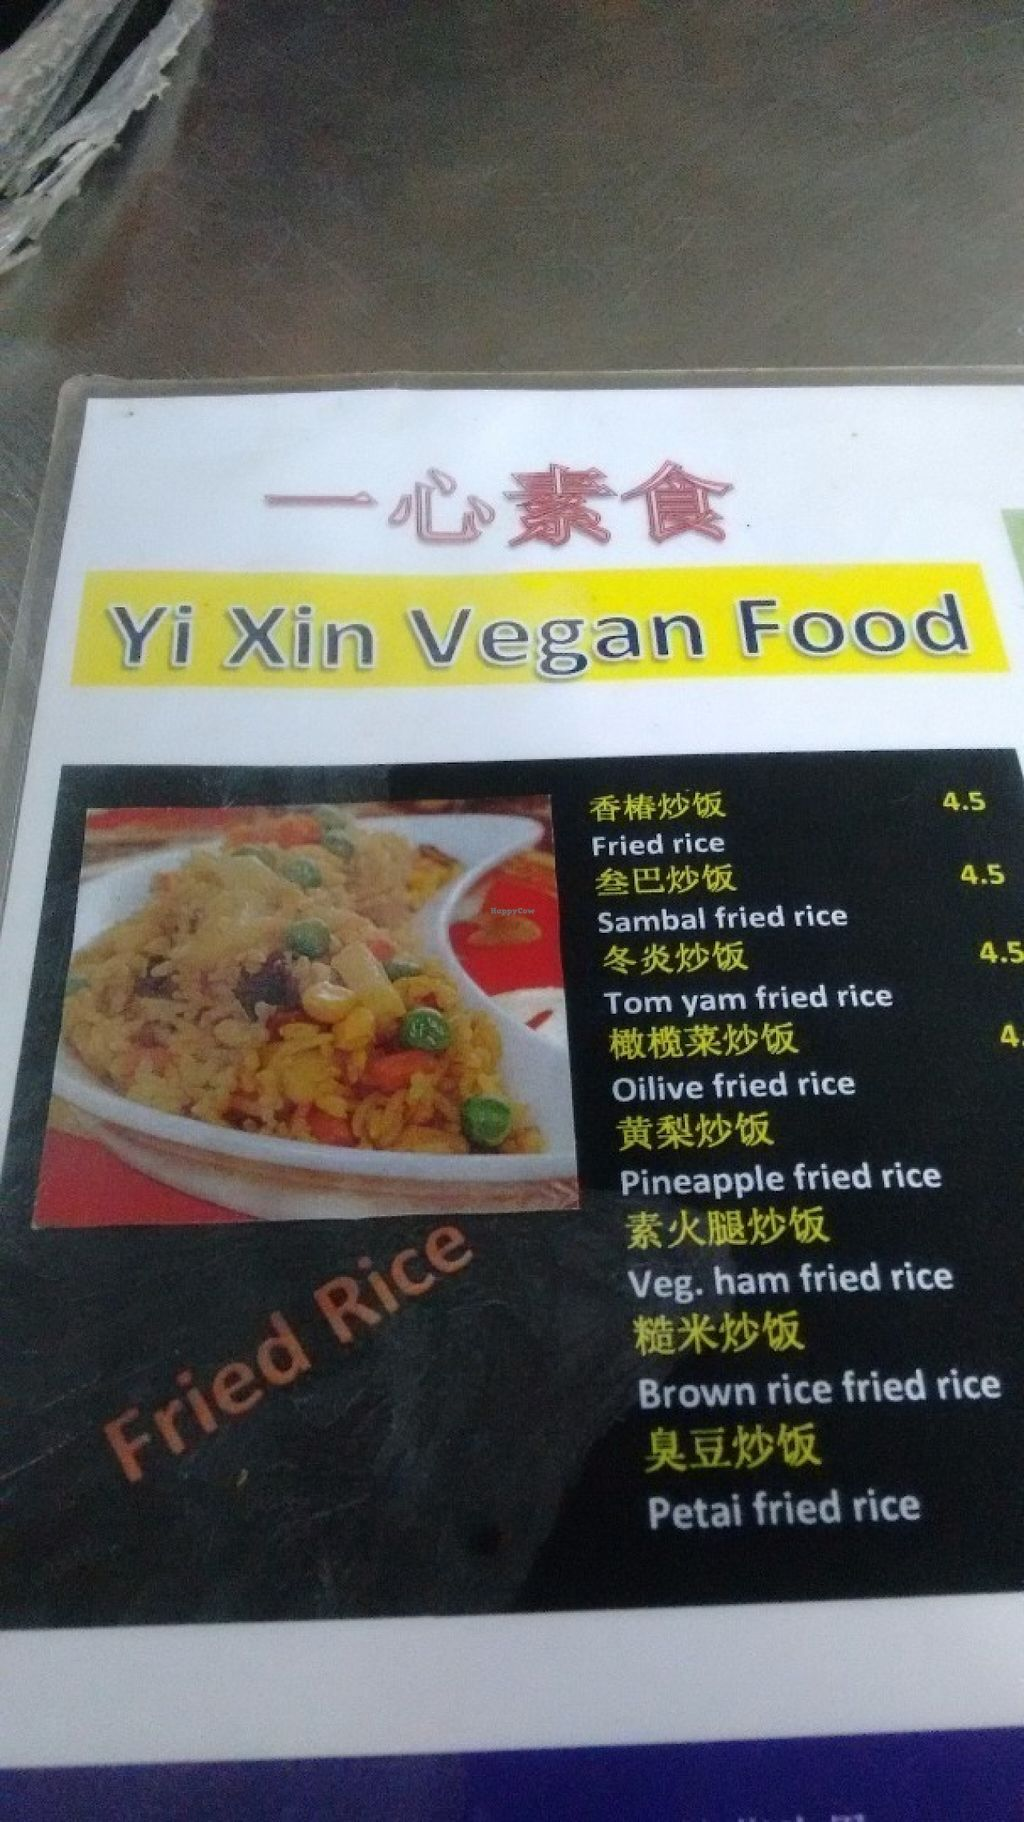 "Photo of Yi Xin Vegan Restaurant  by <a href=""/members/profile/craigmc"">craigmc</a> <br/>Vegan menu <br/> July 12, 2016  - <a href='/contact/abuse/image/10289/159325'>Report</a>"